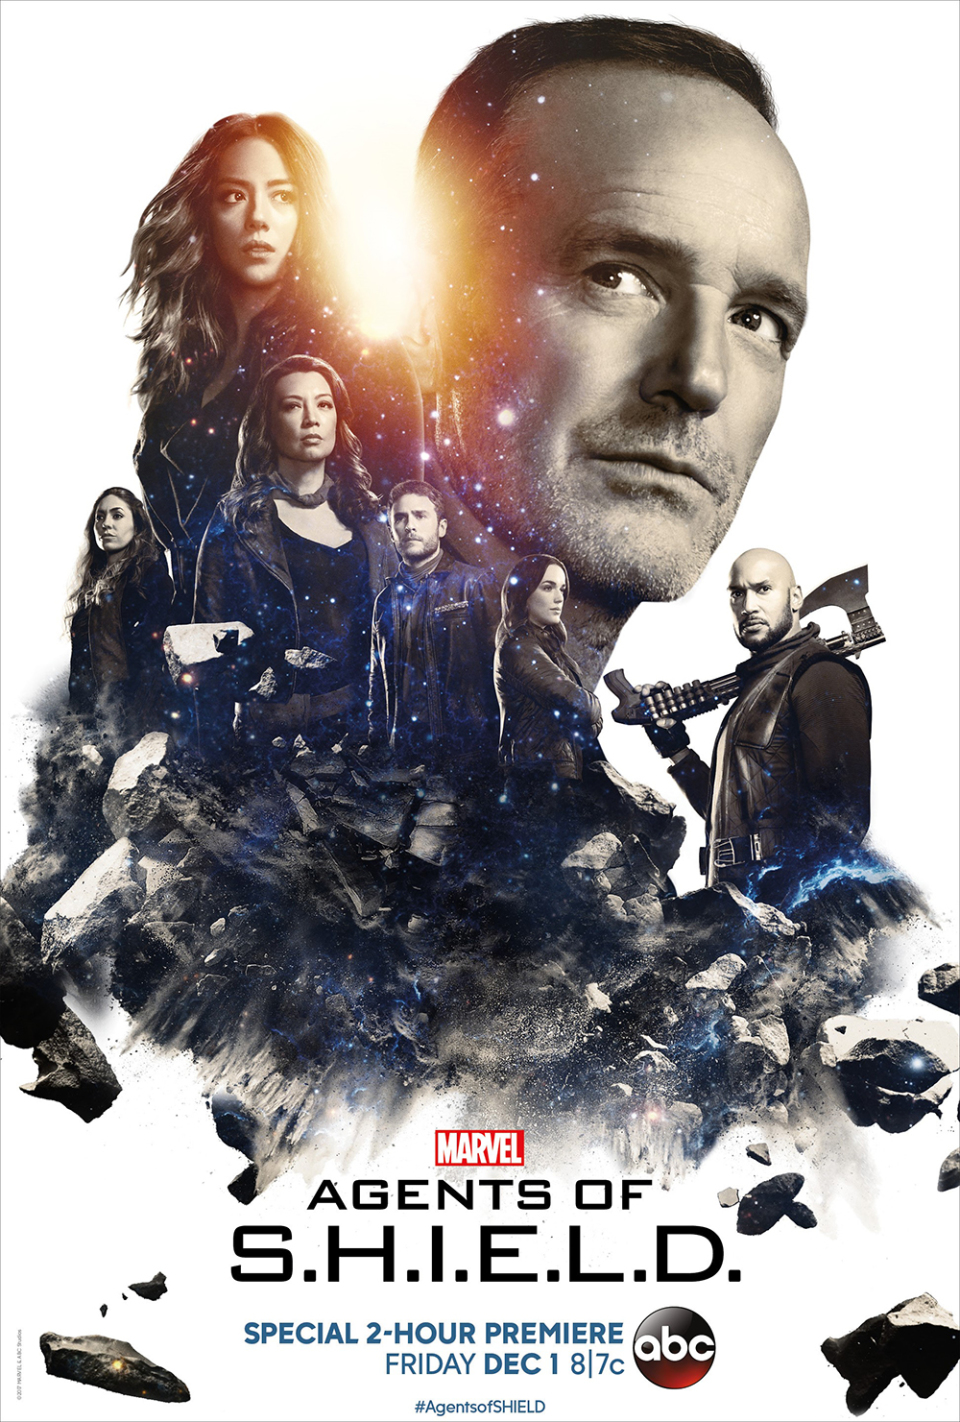 Agents of SHIELD season 5 iconic poster